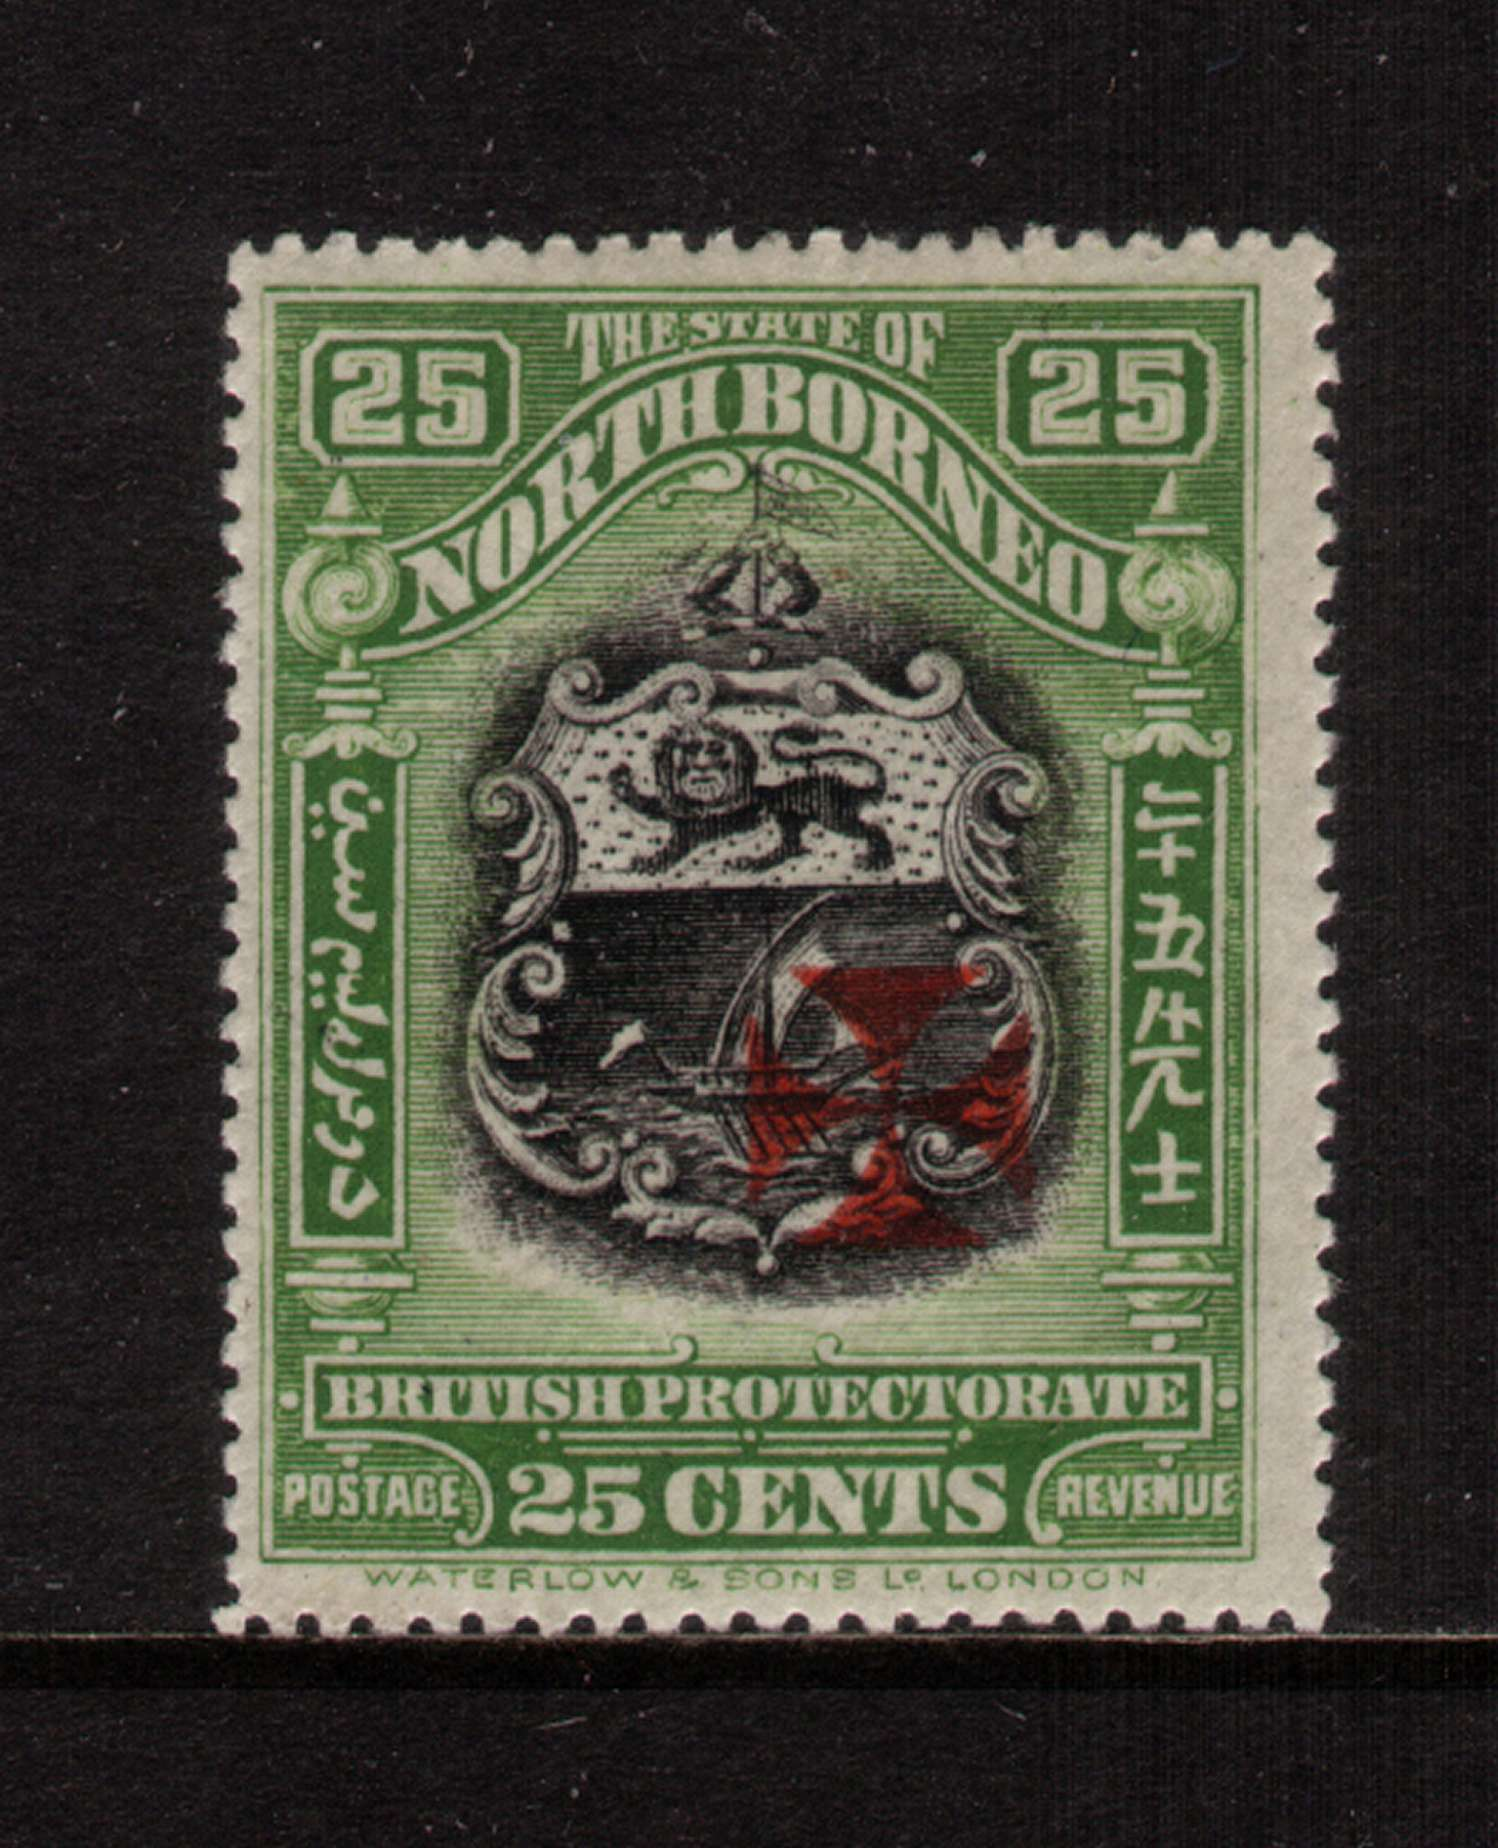 The 25c Green and Black overprinted with Cross in Carmine - Matt ink showing the rare Re-entry of Doubled Oars and Dots behind Lion.fine lightly mounted mint. A rare stamp!